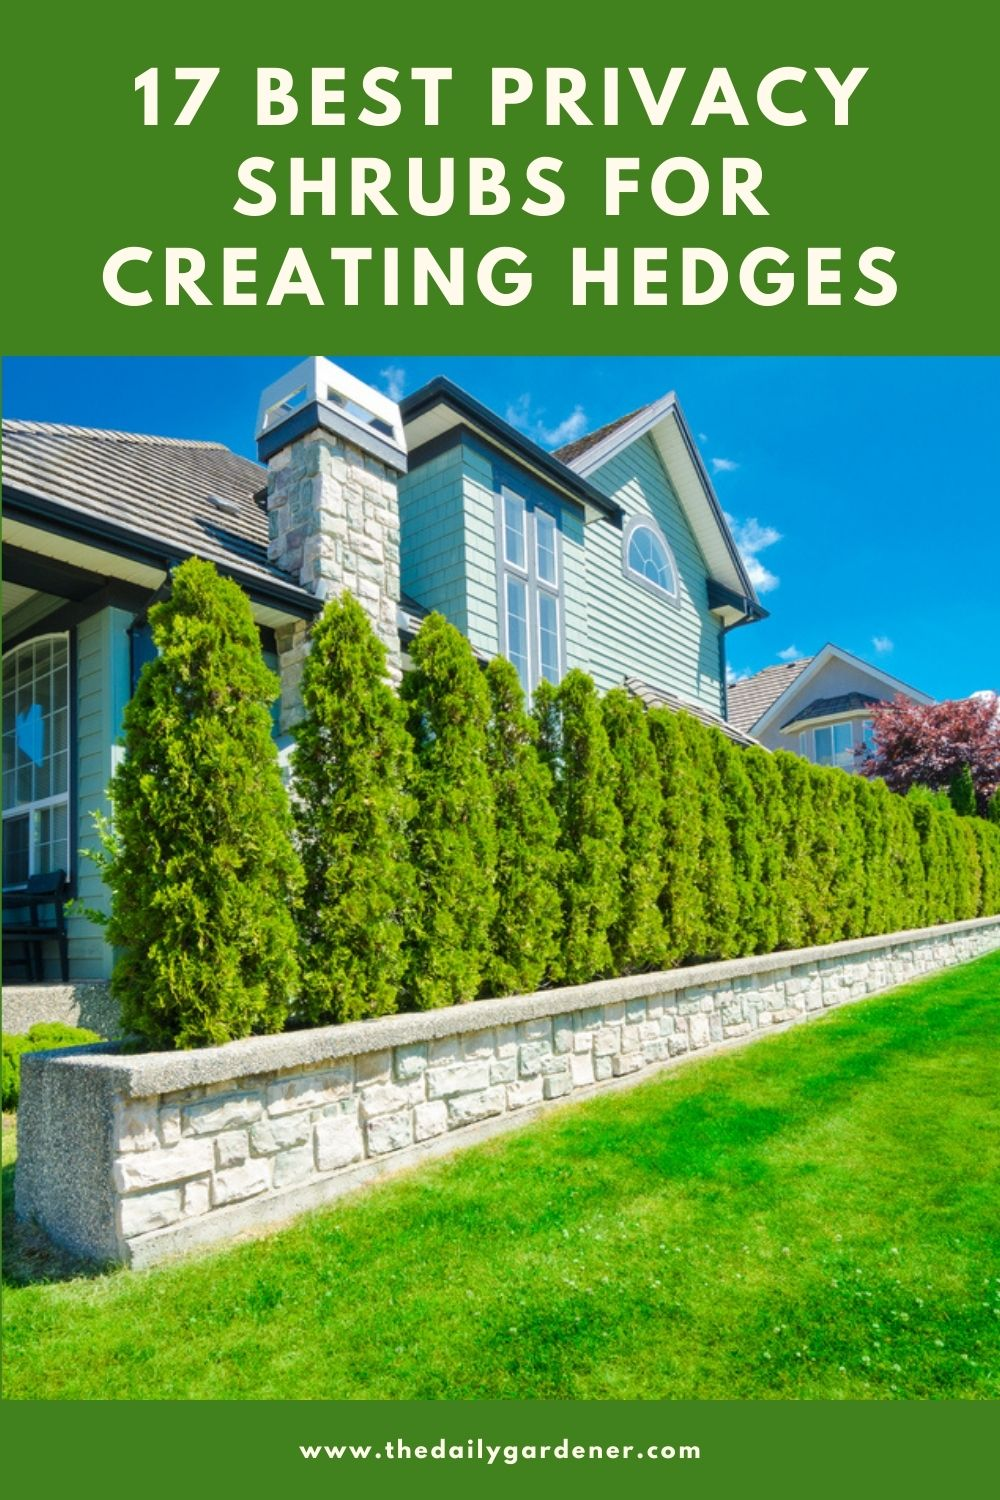 17 Best Privacy Shrubs for Creating Hedges 1